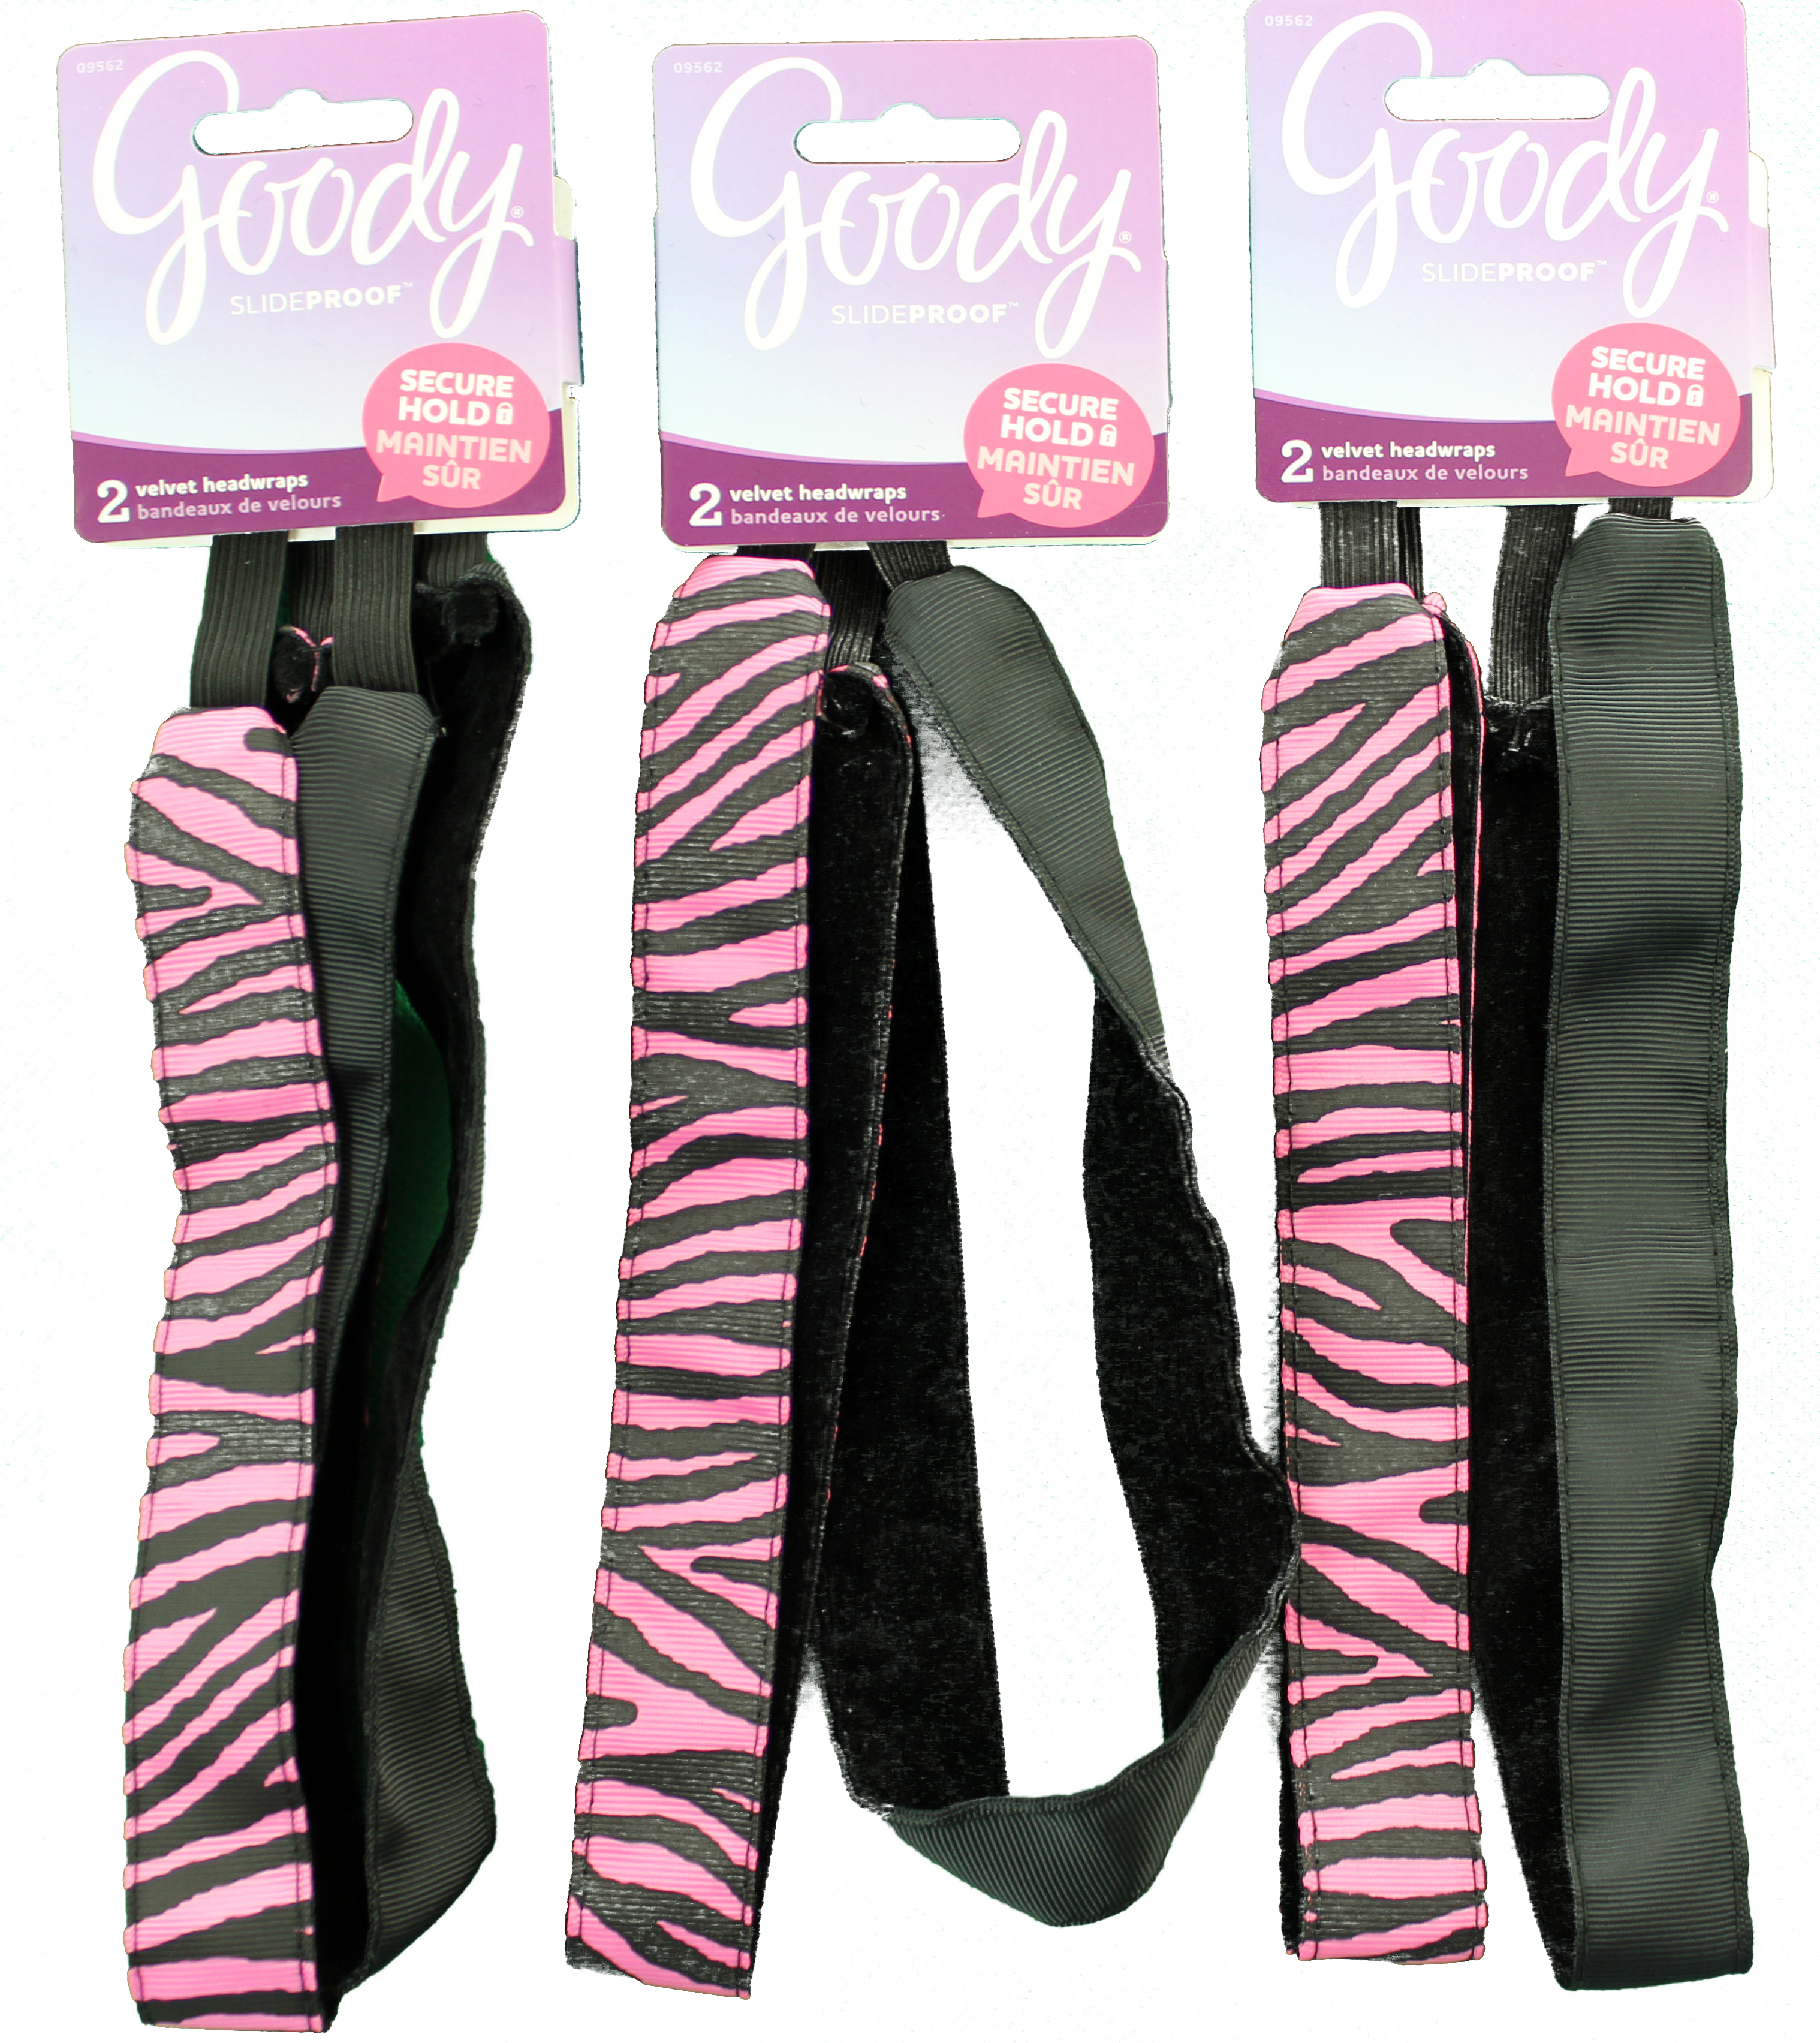 Goody Slide Proof Velvet Line Sports Headband Zebra Pattern, 1 CT